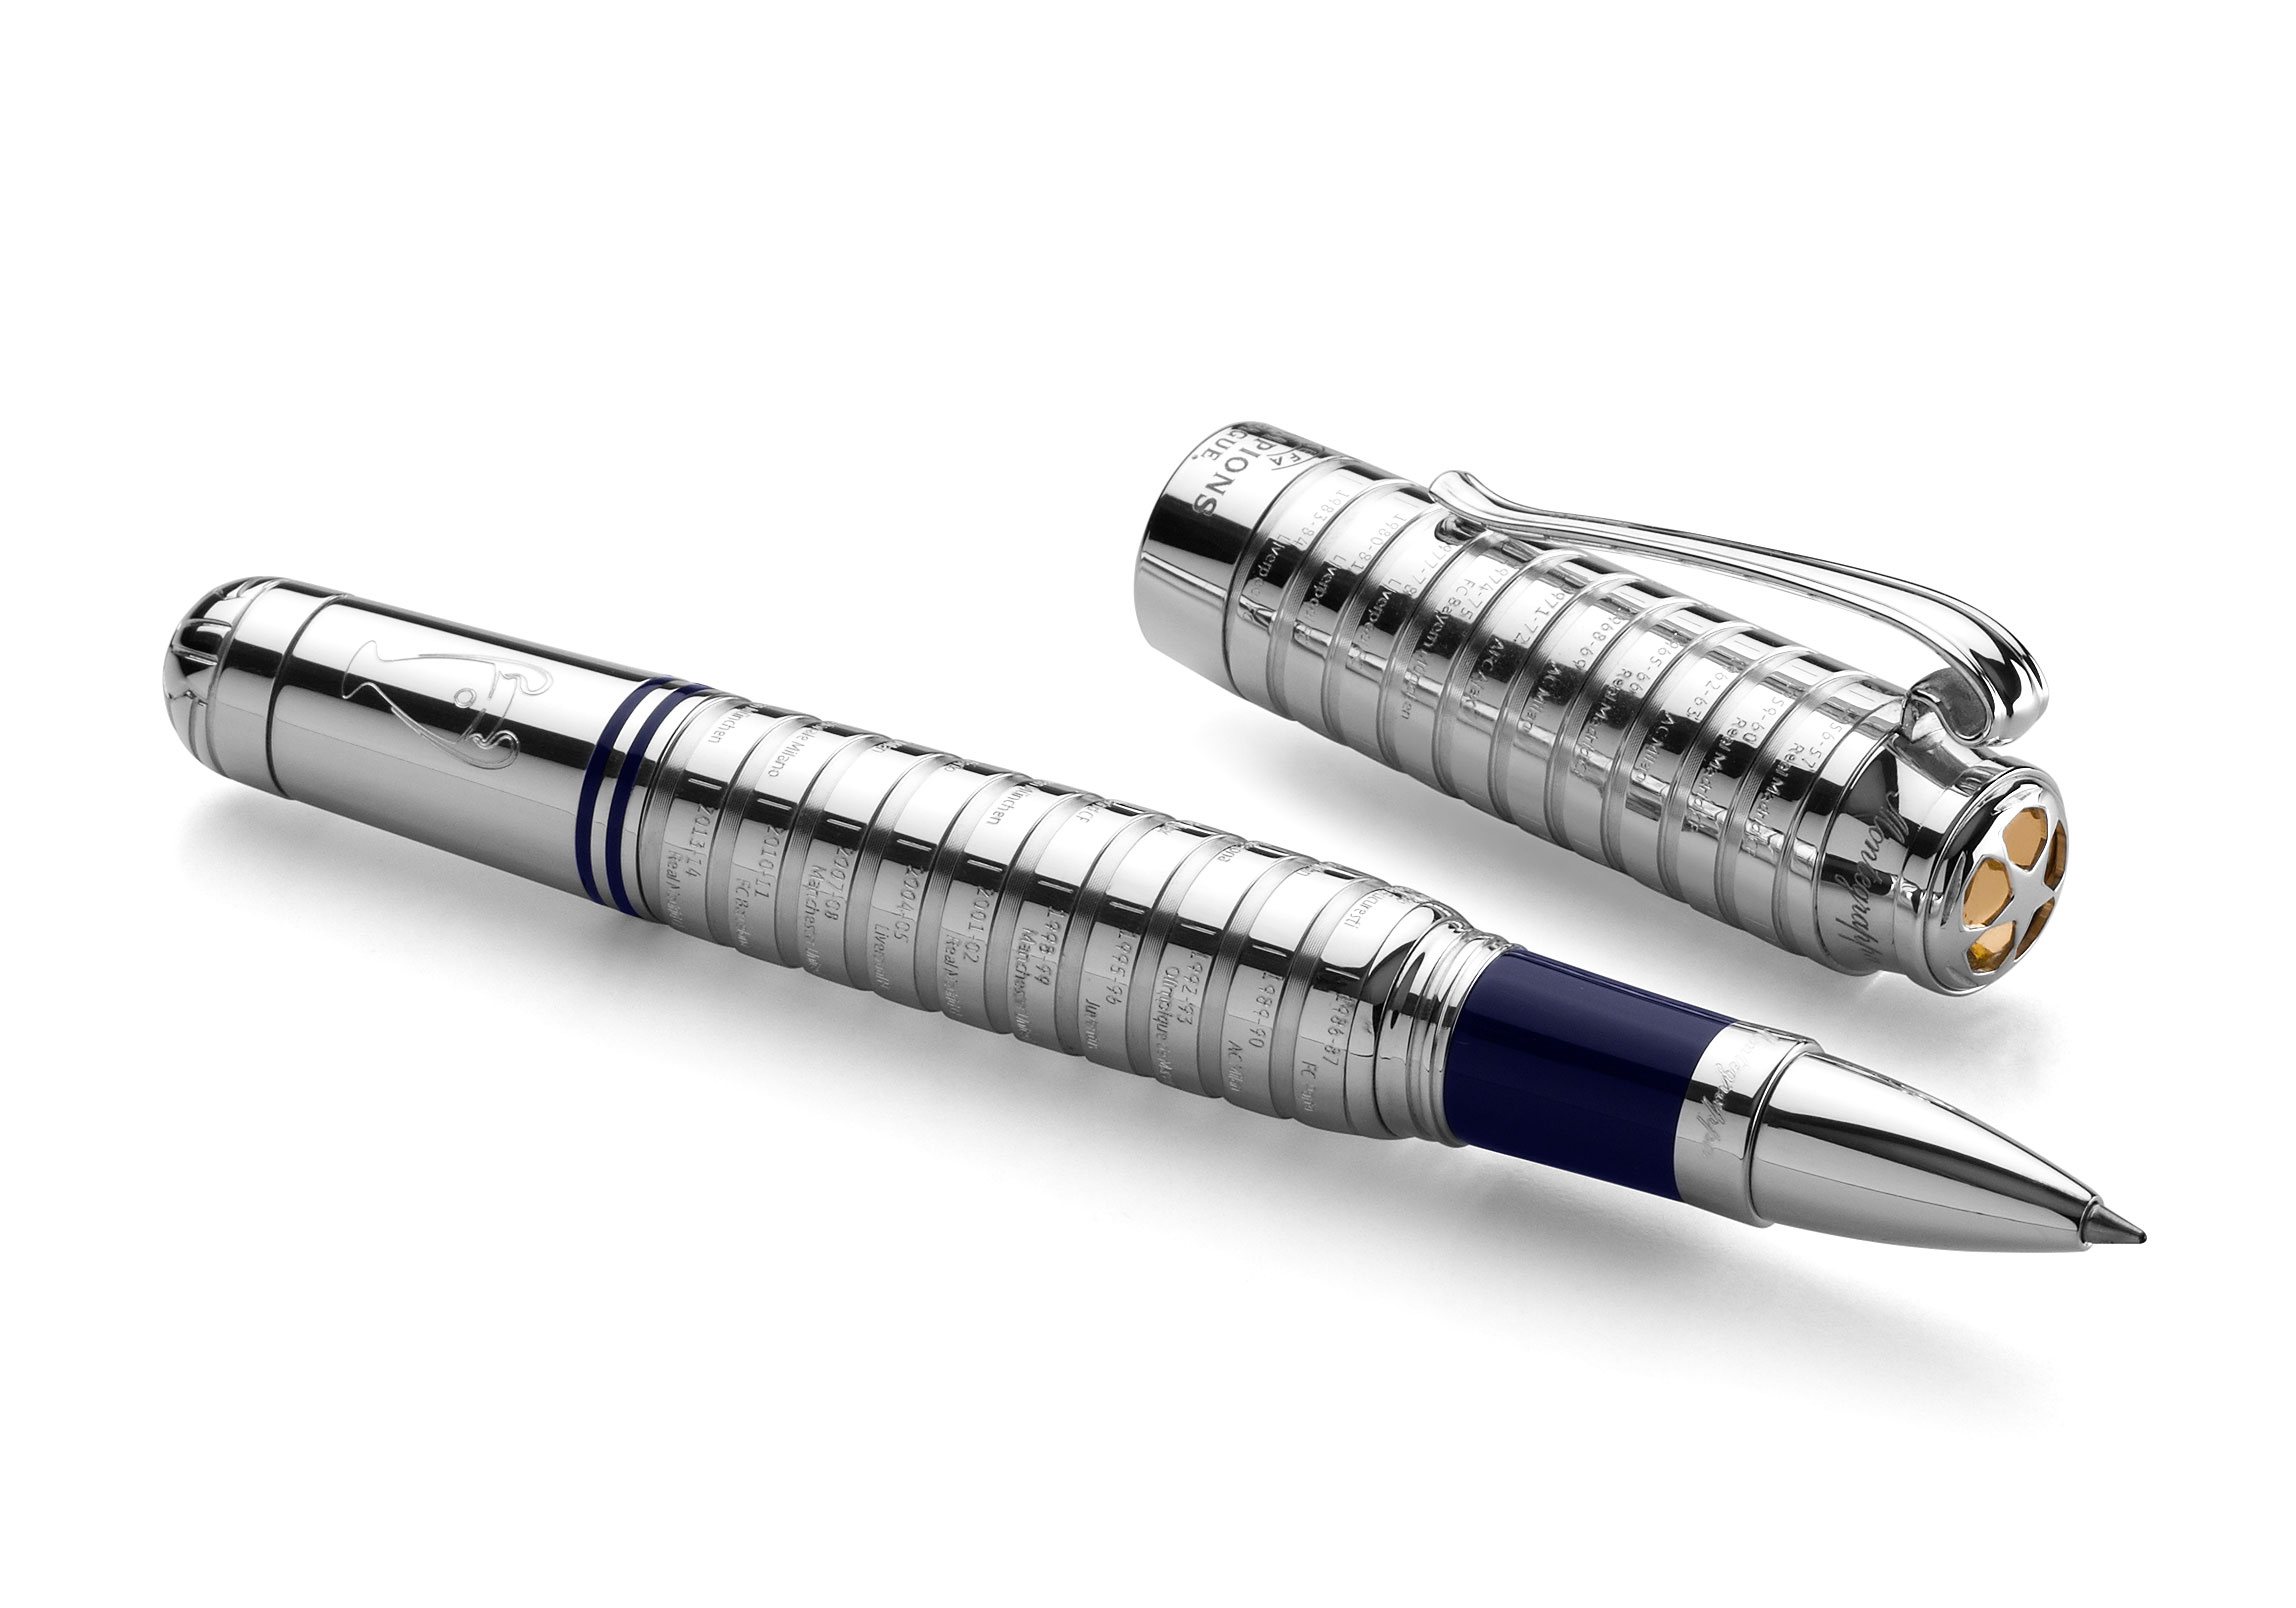 Montegrappa launch limited edition gold and silver pen collection in celebration of European football